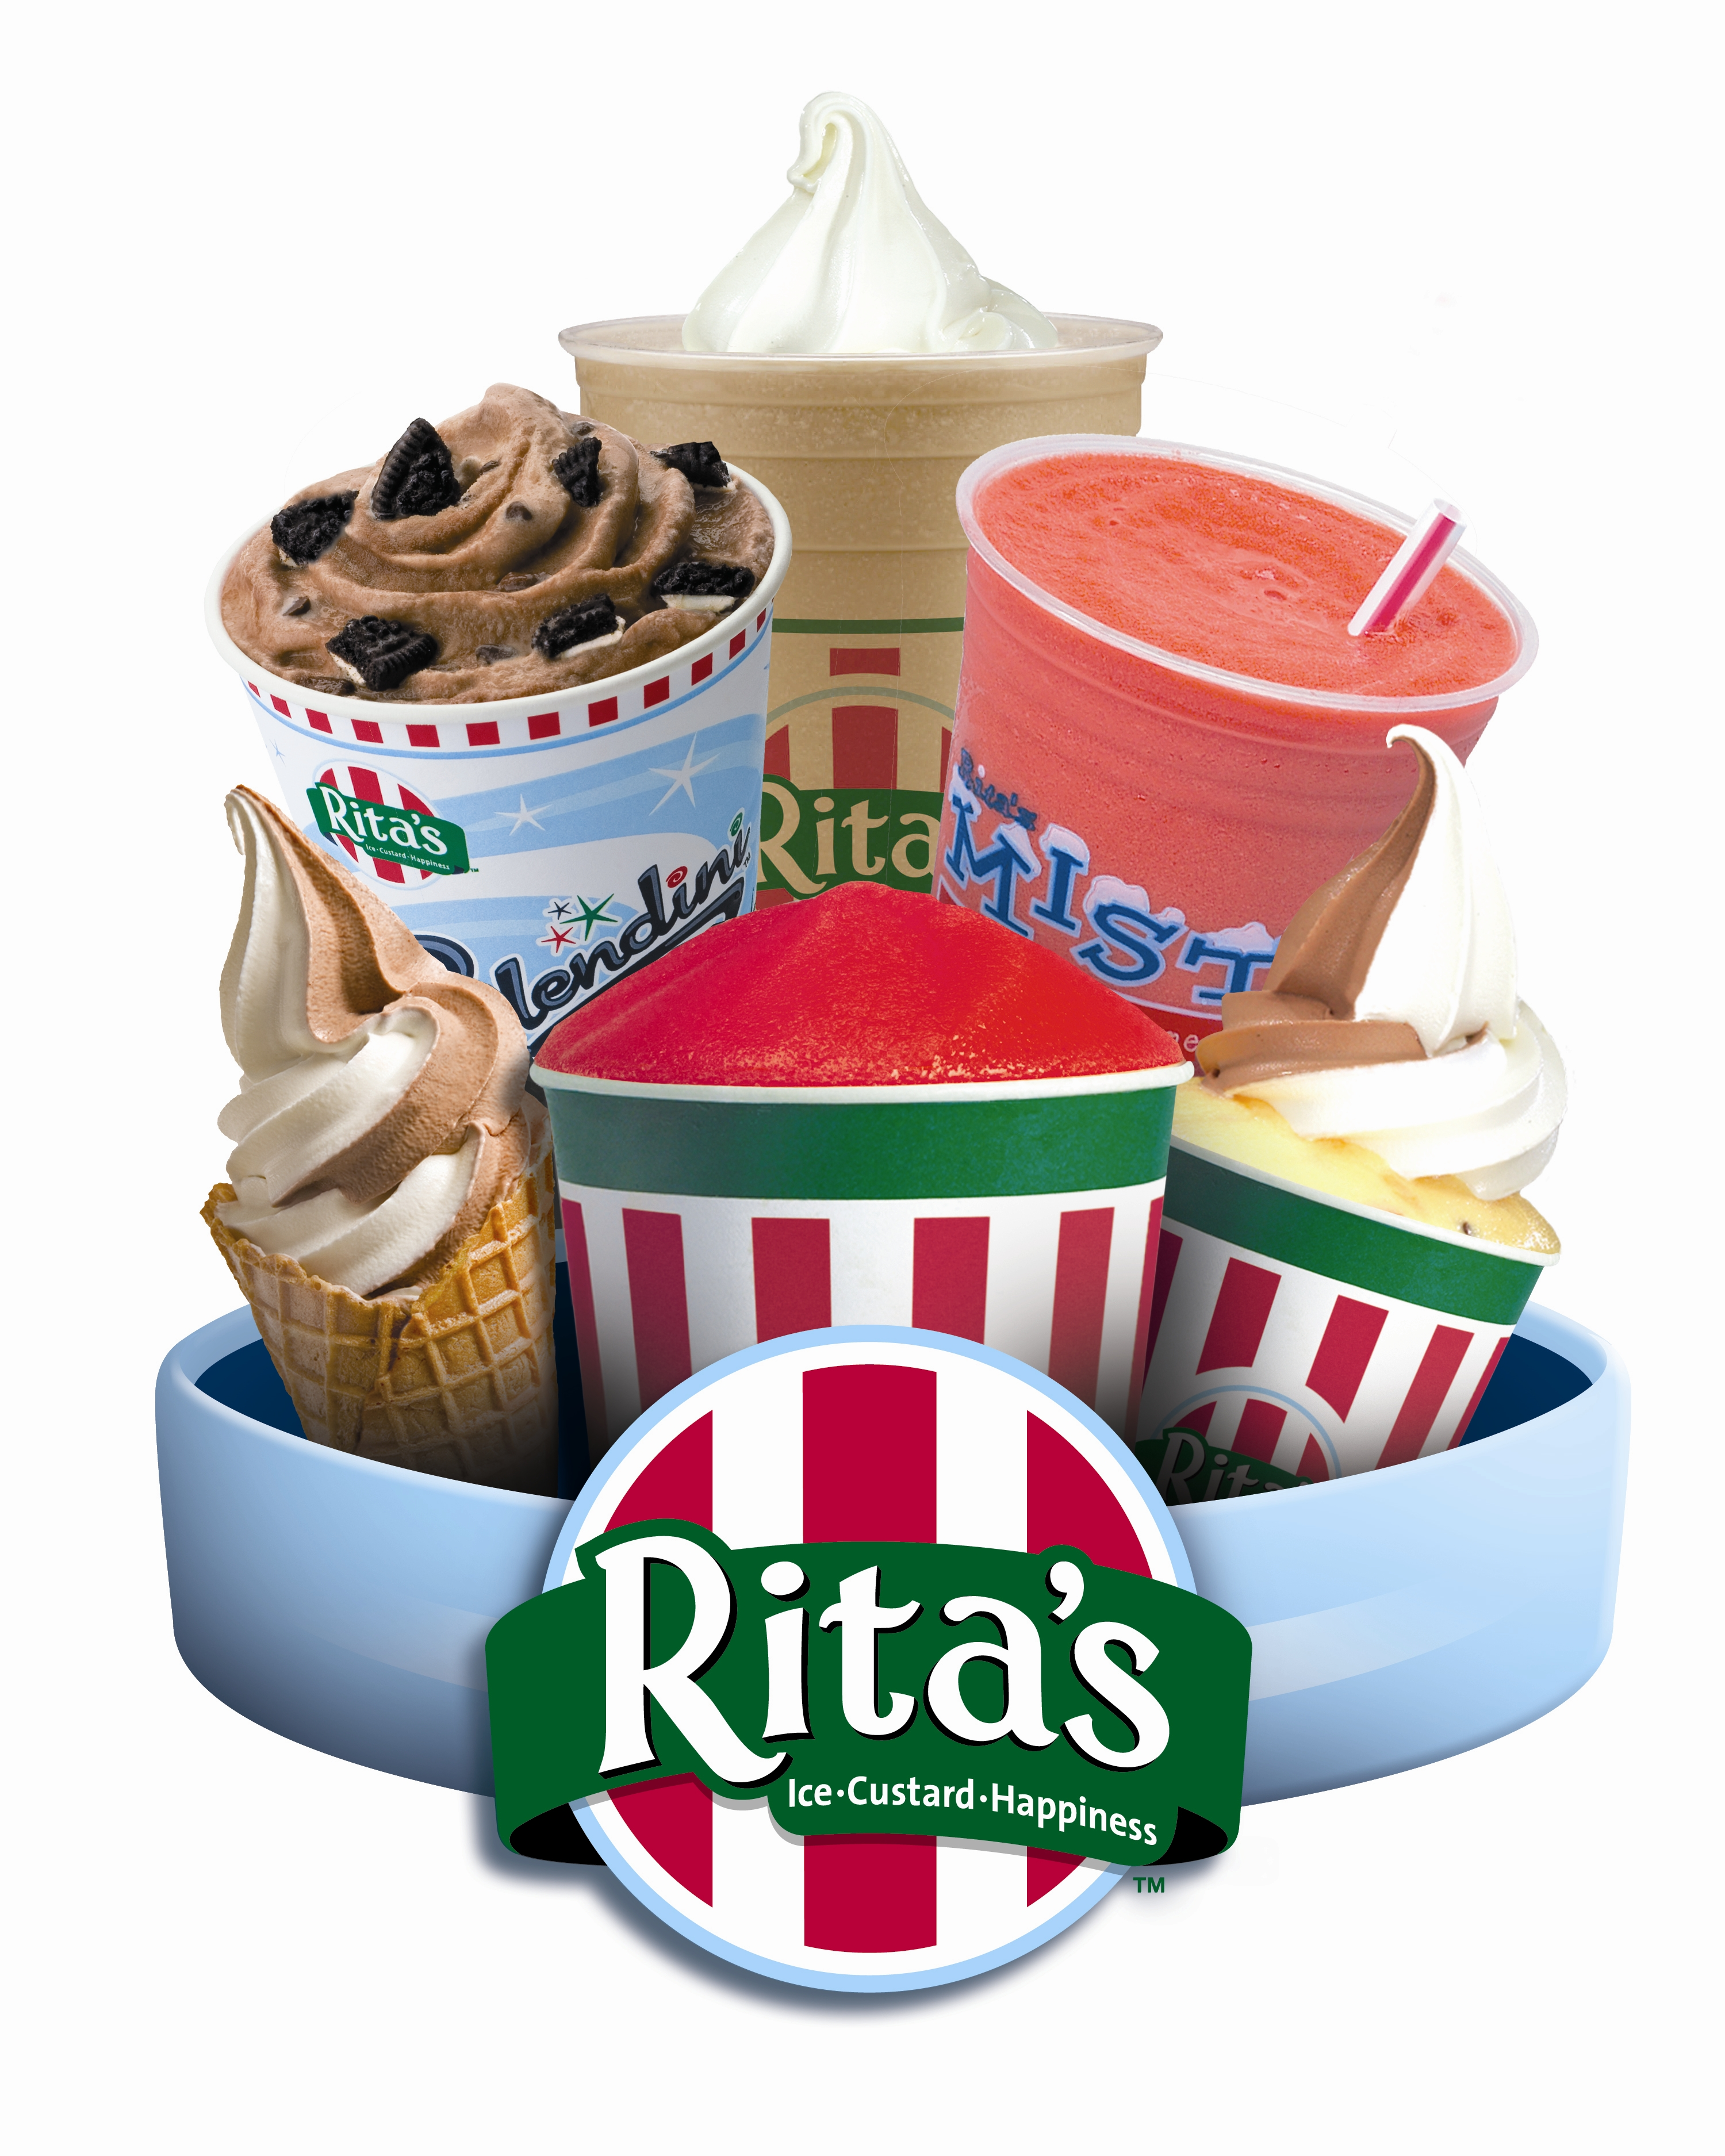 Rita's Lawrenceville To Reopen Friday the 25th.